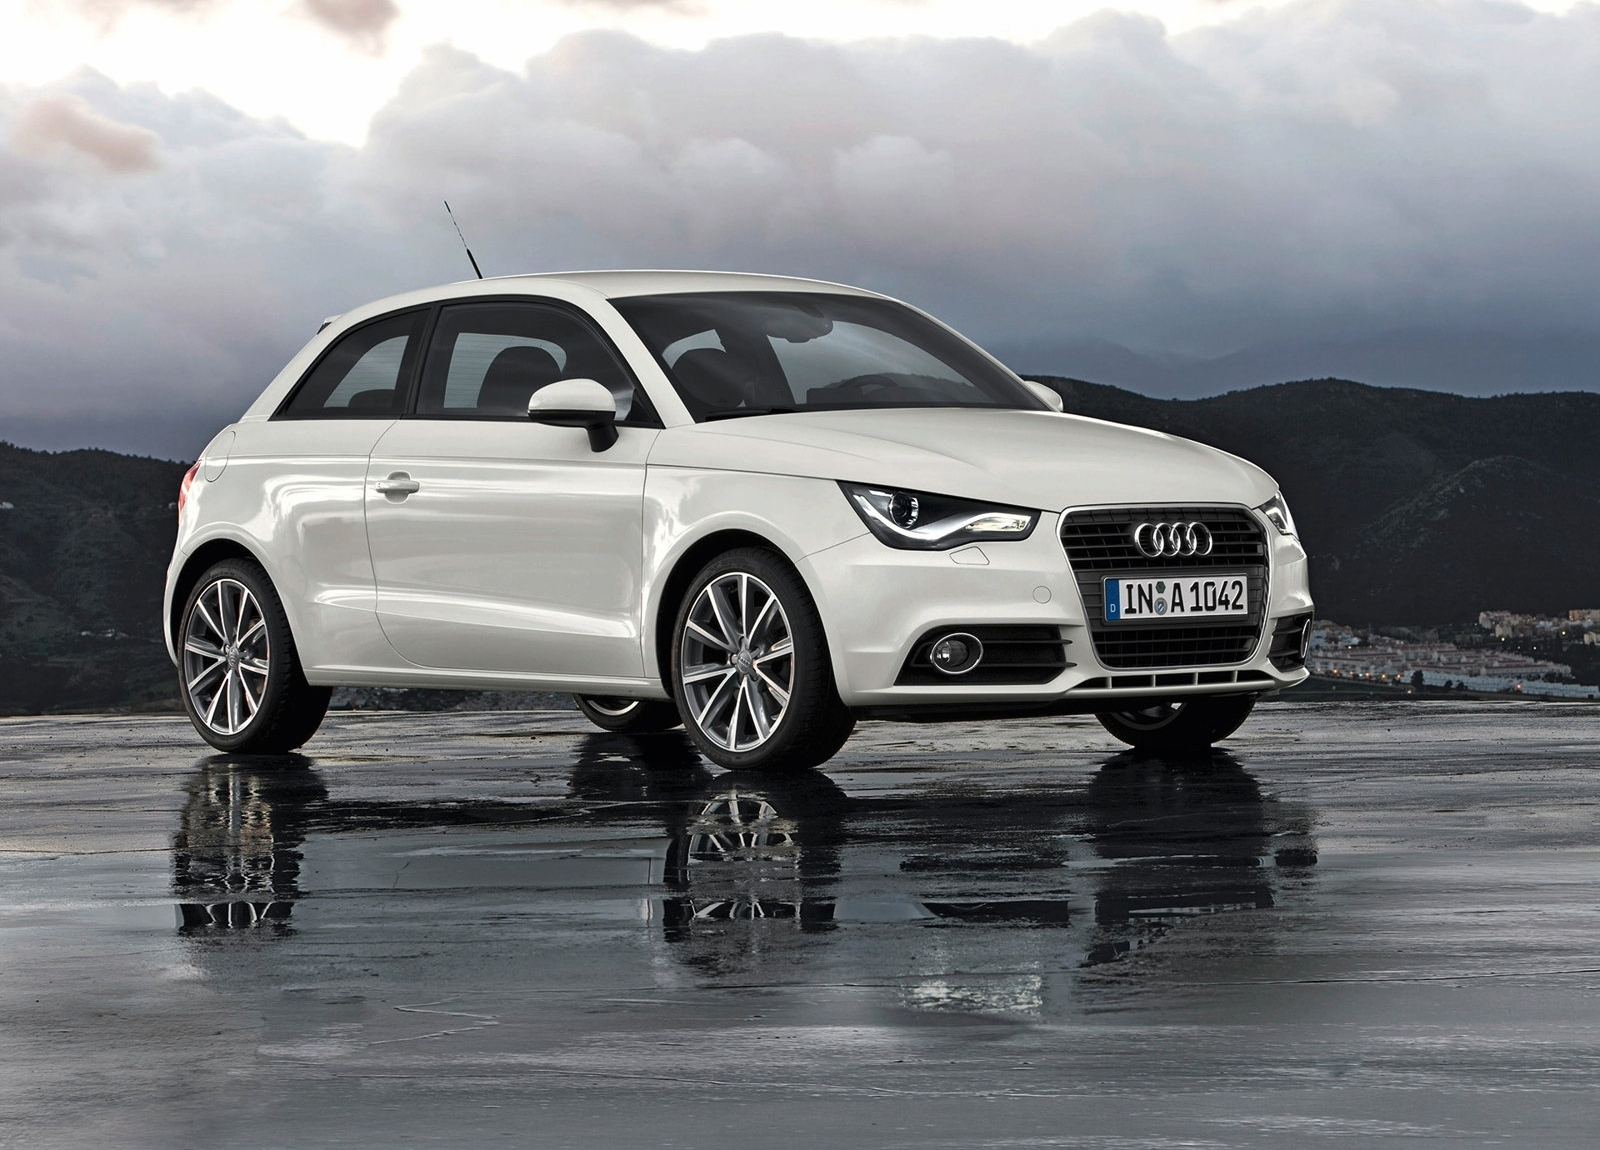 1600x1150 - Audi A1 Wallpapers 18